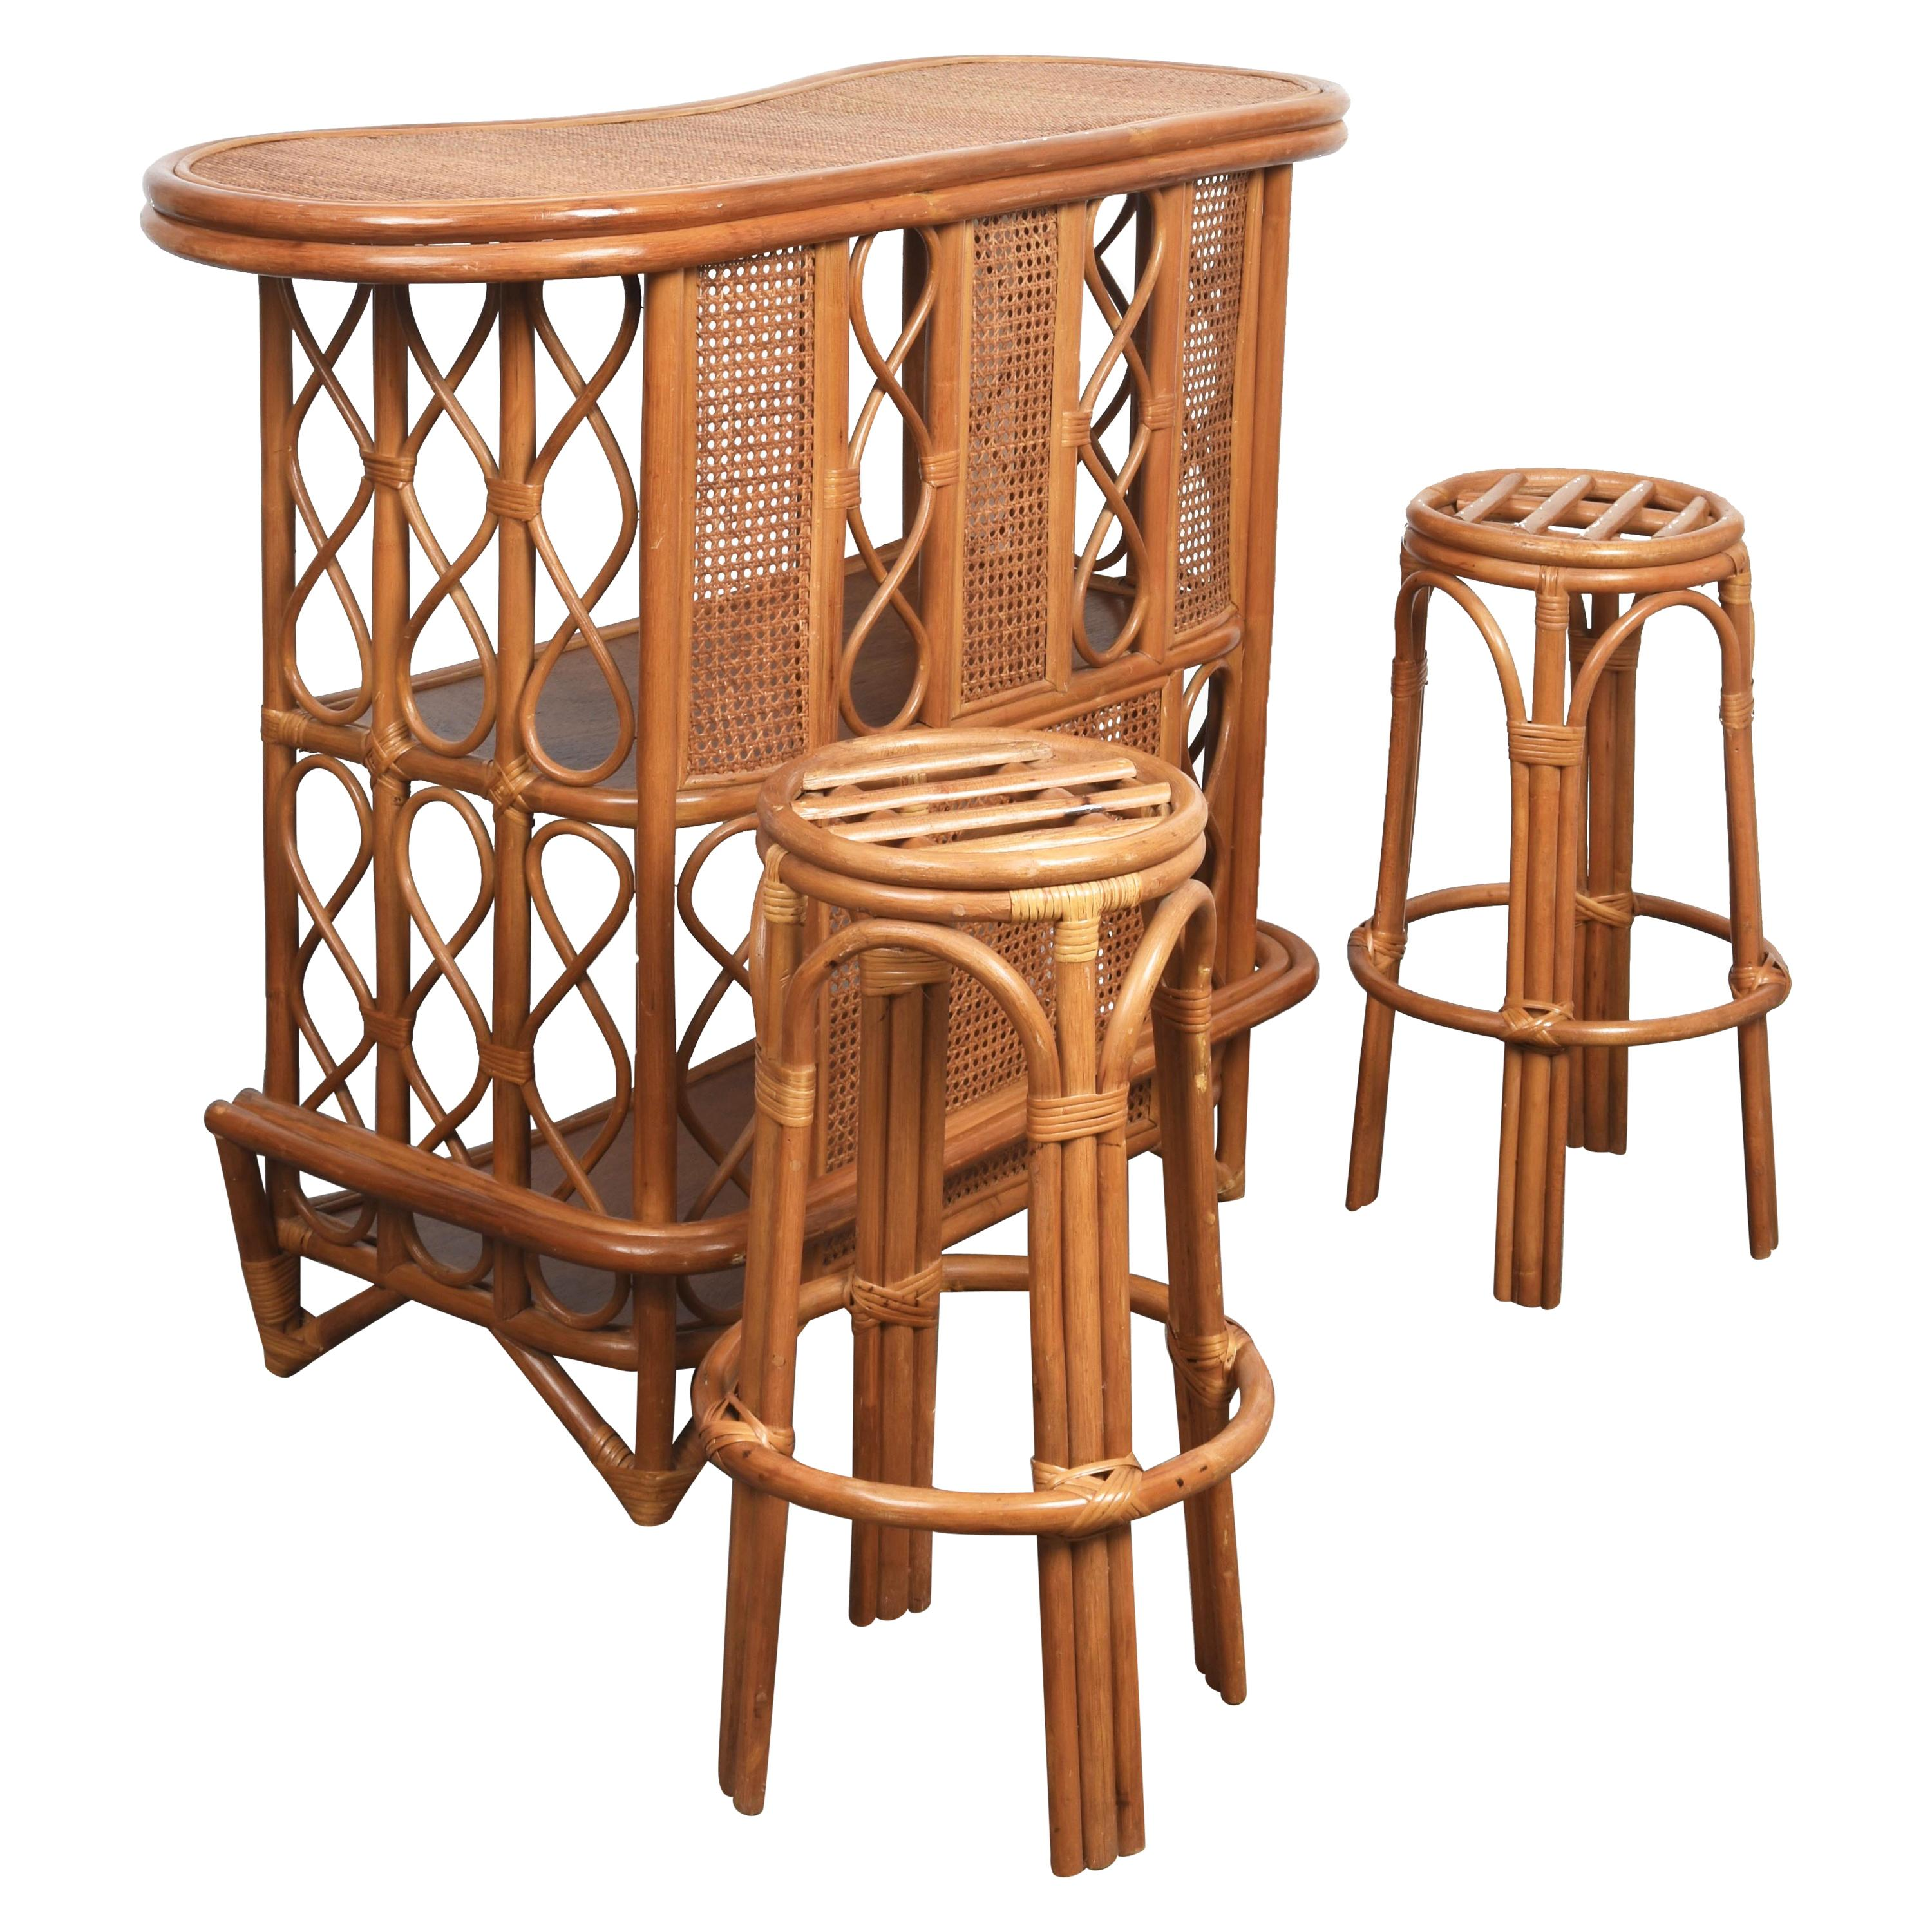 Midcentury French Riviera Wien Rattan and Bamboo Dry Bar, Italy, 1960s